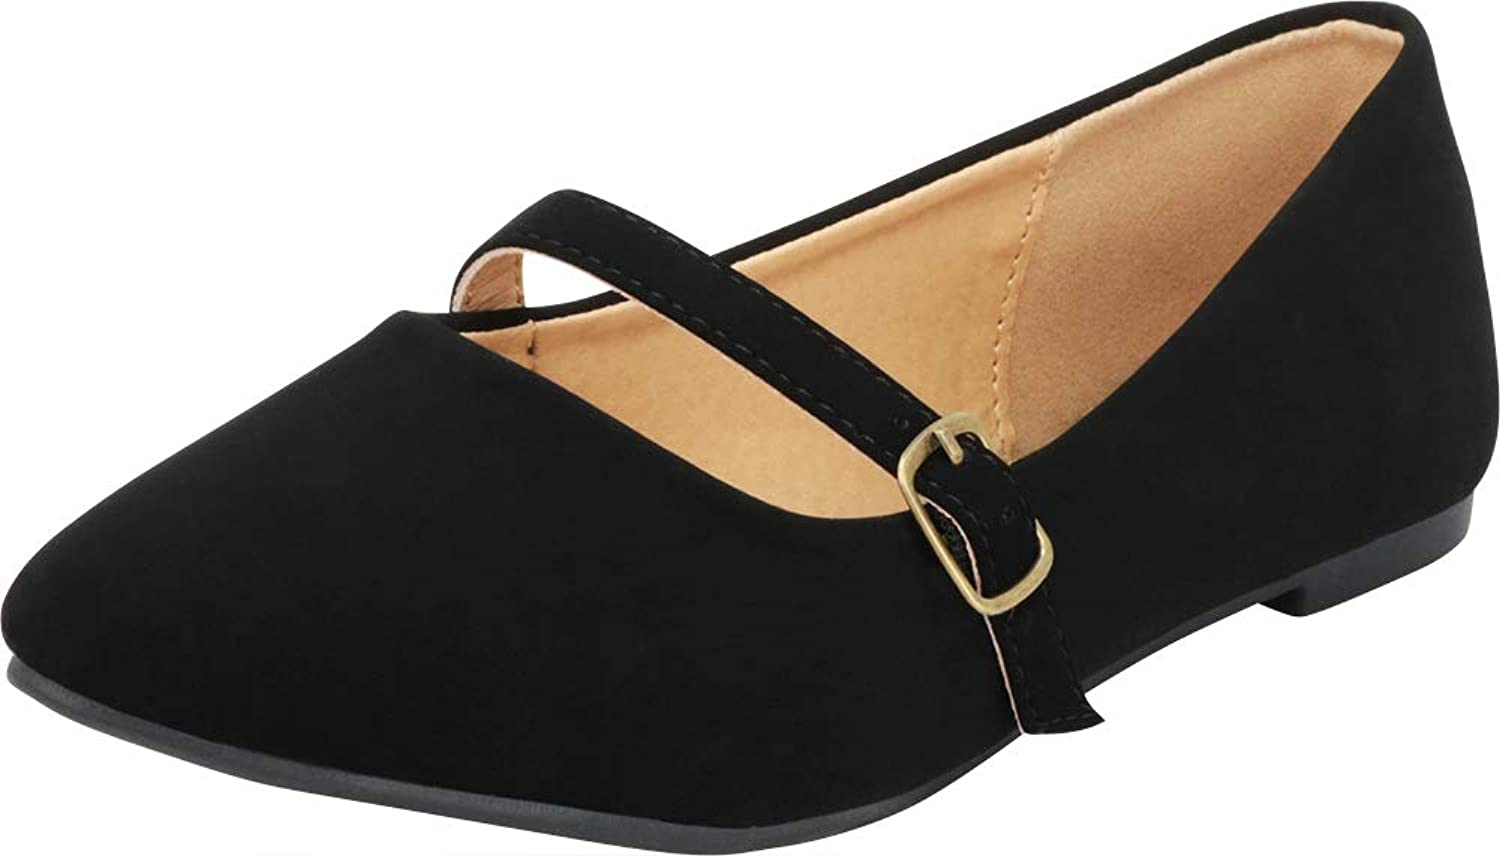 Cambridge Select Women's Pointed Toe Mary Jane Ballet Flat